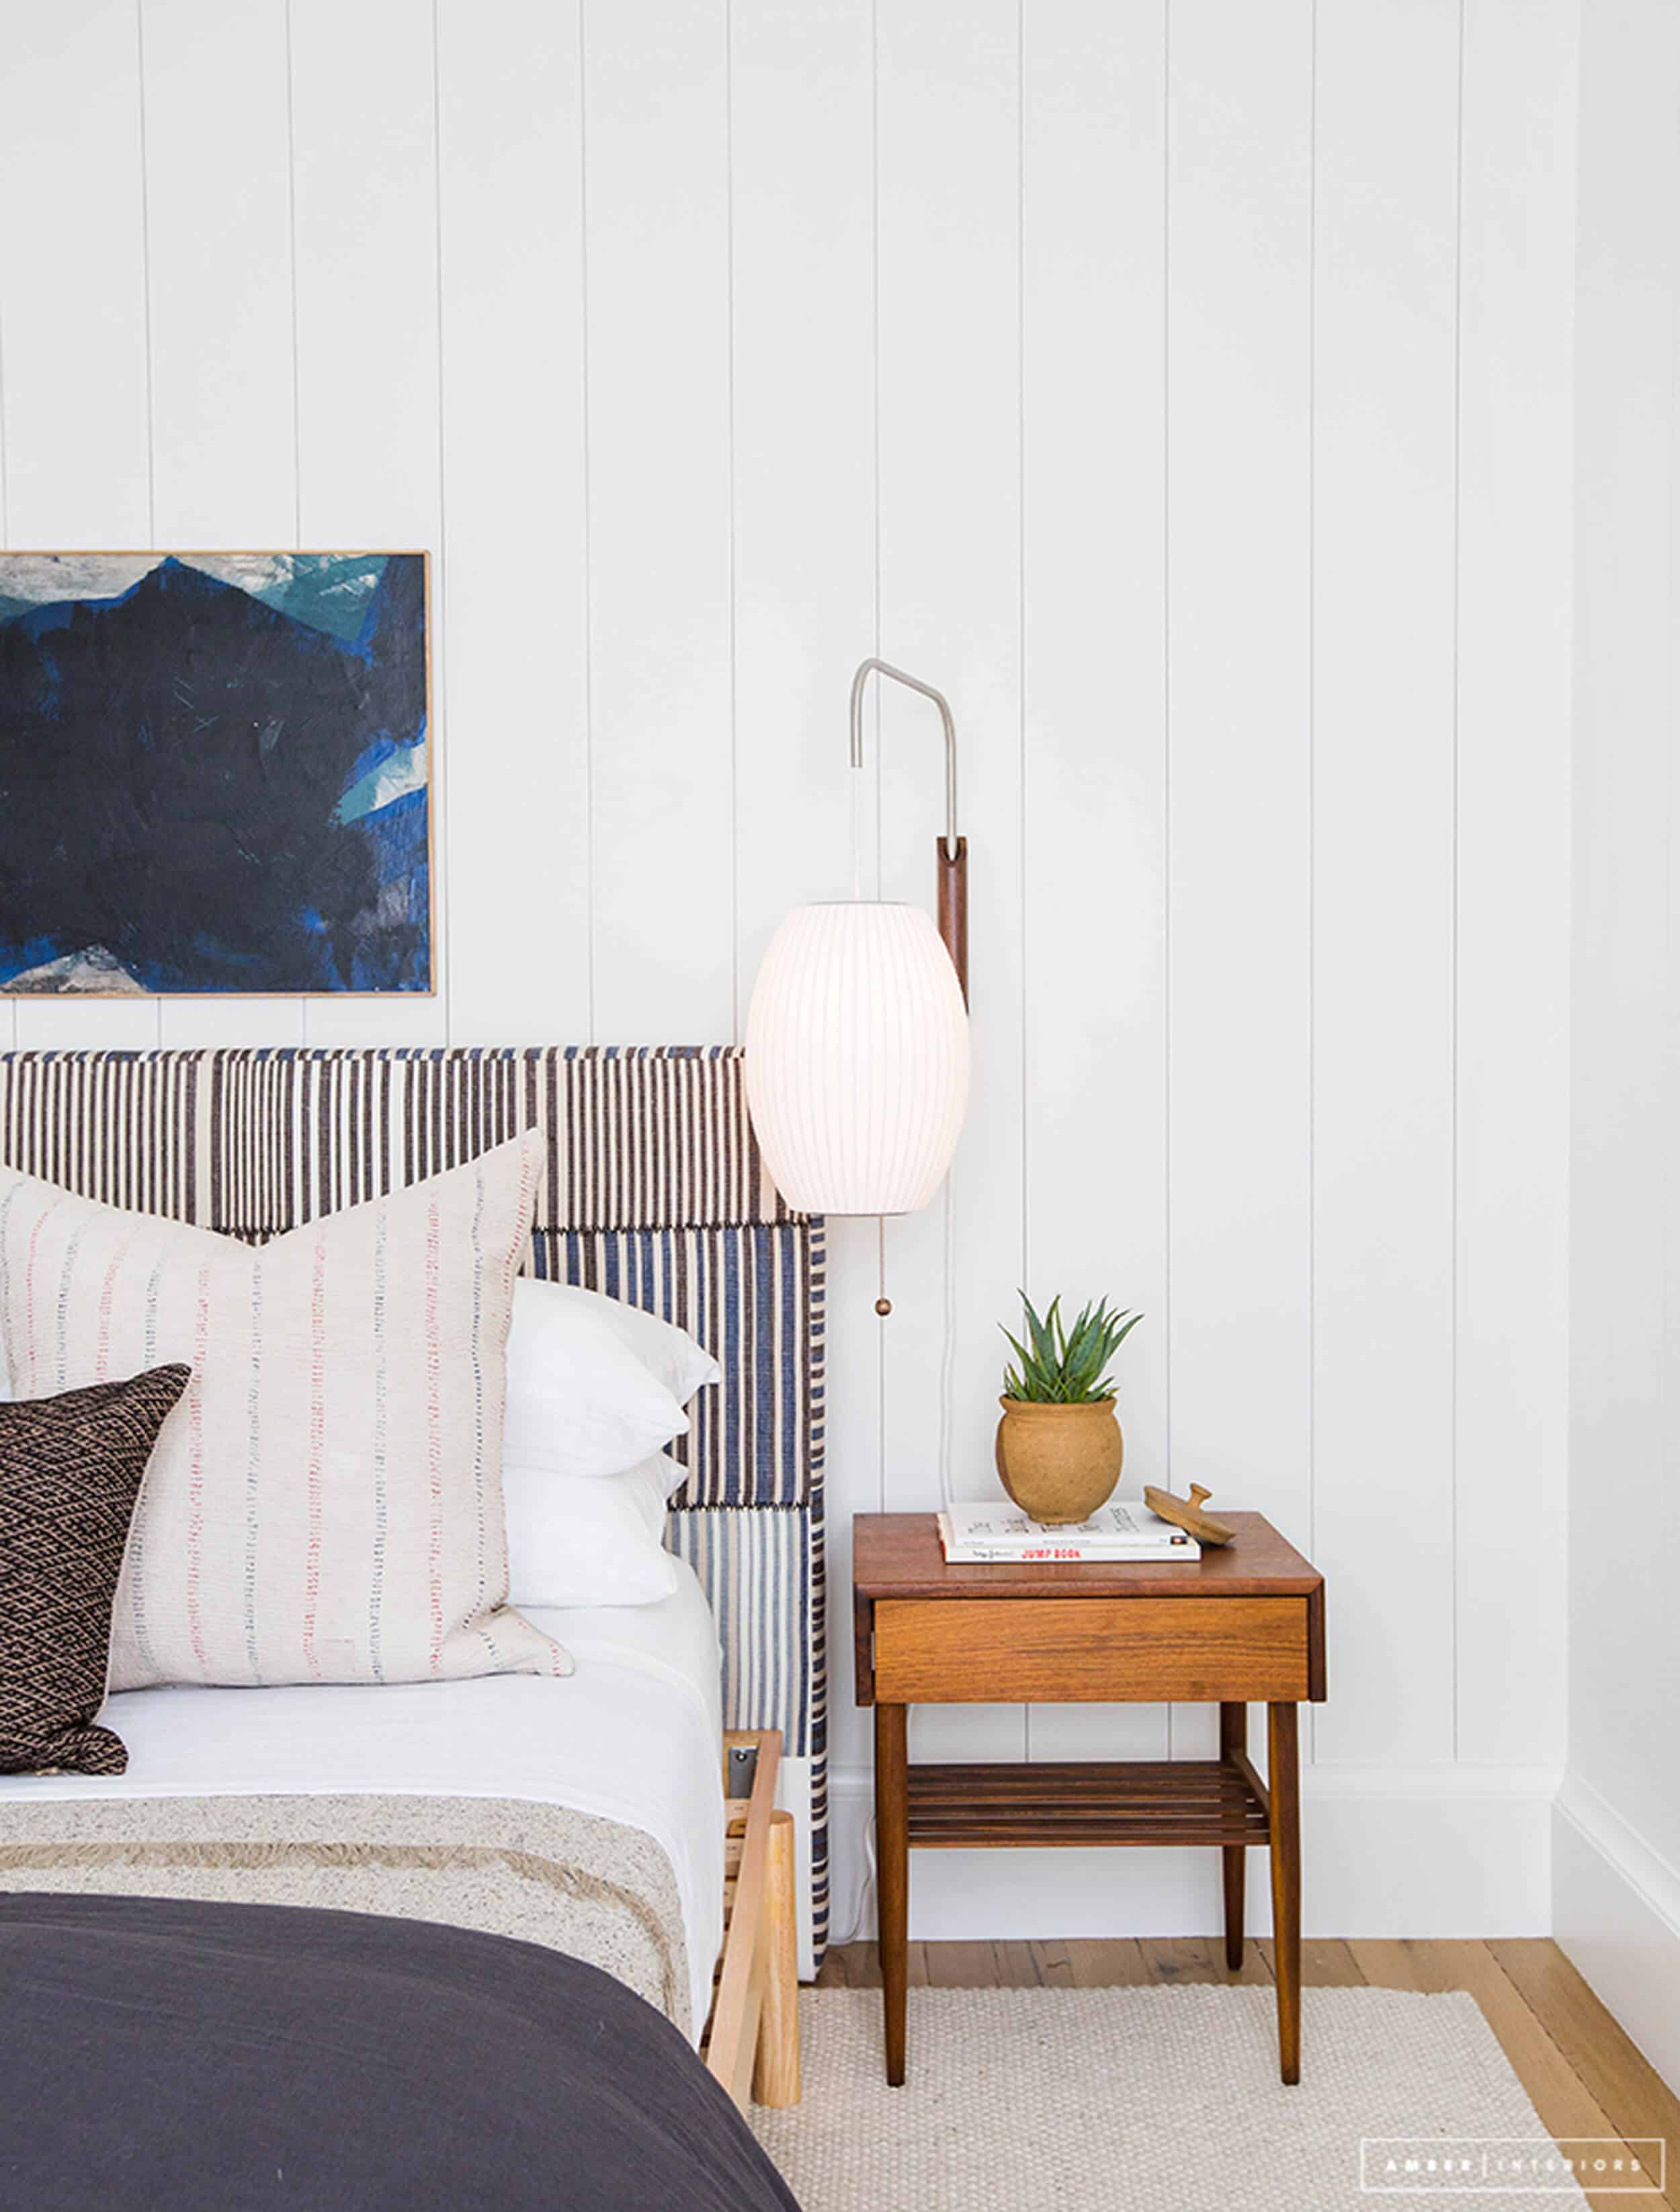 How To Add Character And Charm To Boring Architecture And Houses Vertical Paneling Header